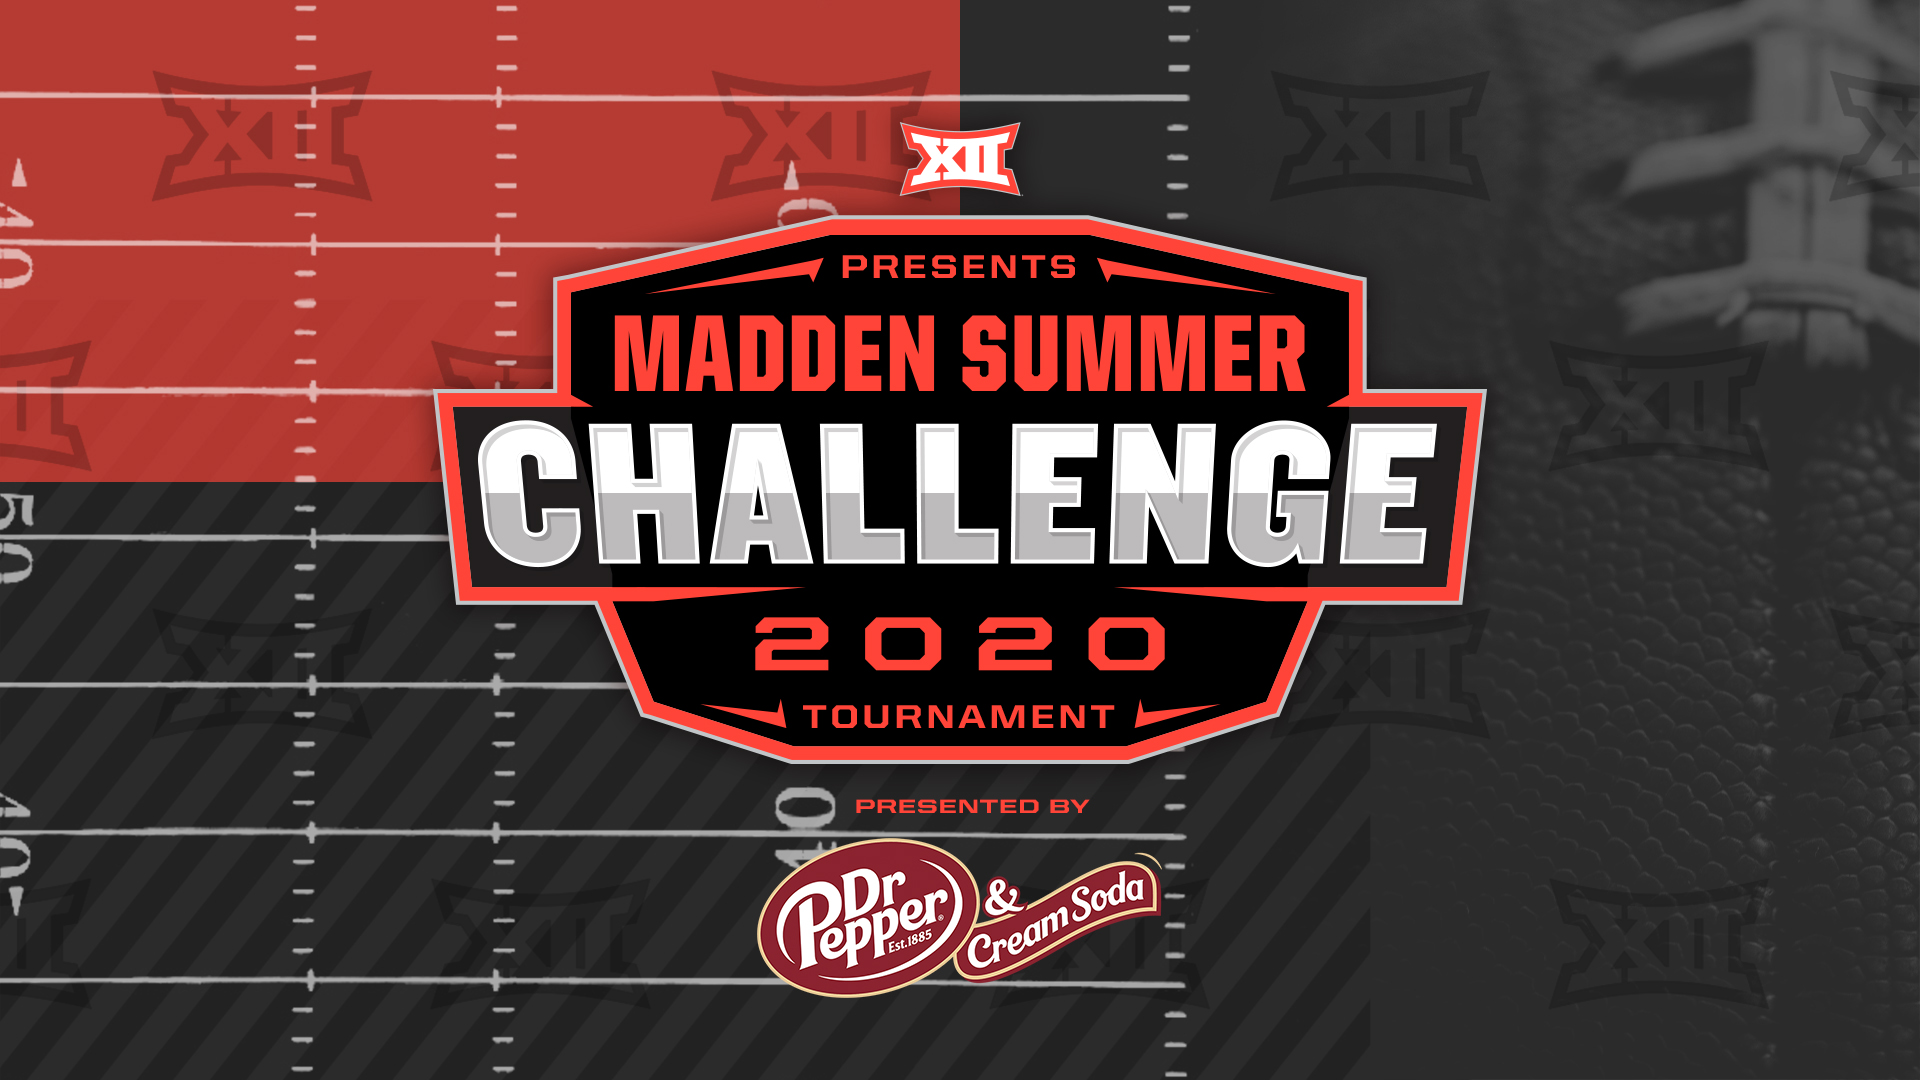 Madden Summer Challenge: An Esports First for the Big 12 Conference and its Members